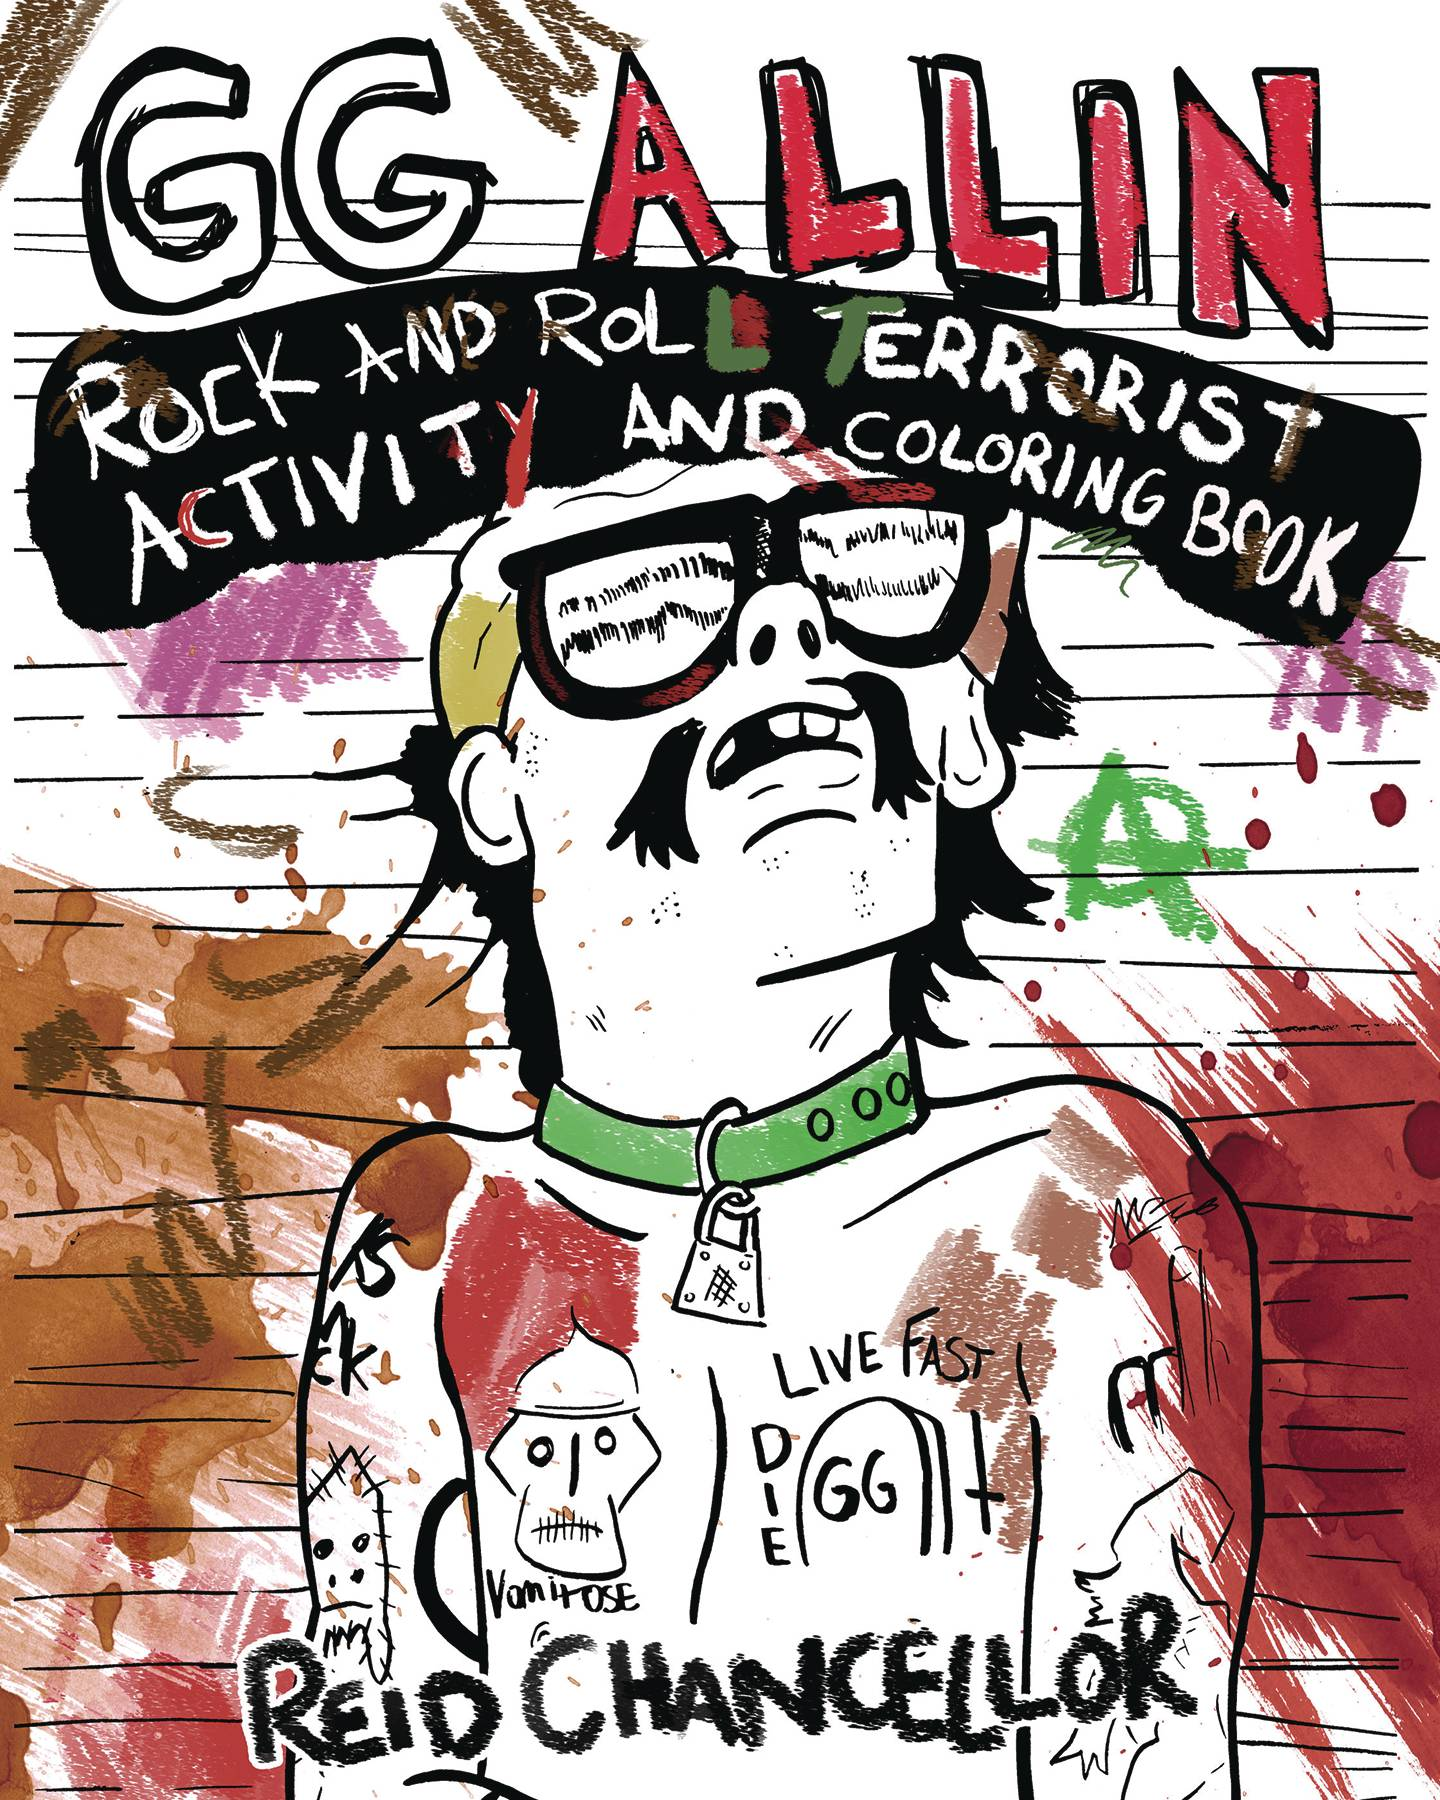 GG ALLIN ROCK & ROLL TERRORIST ACTIVITYAND COLORING BOOK